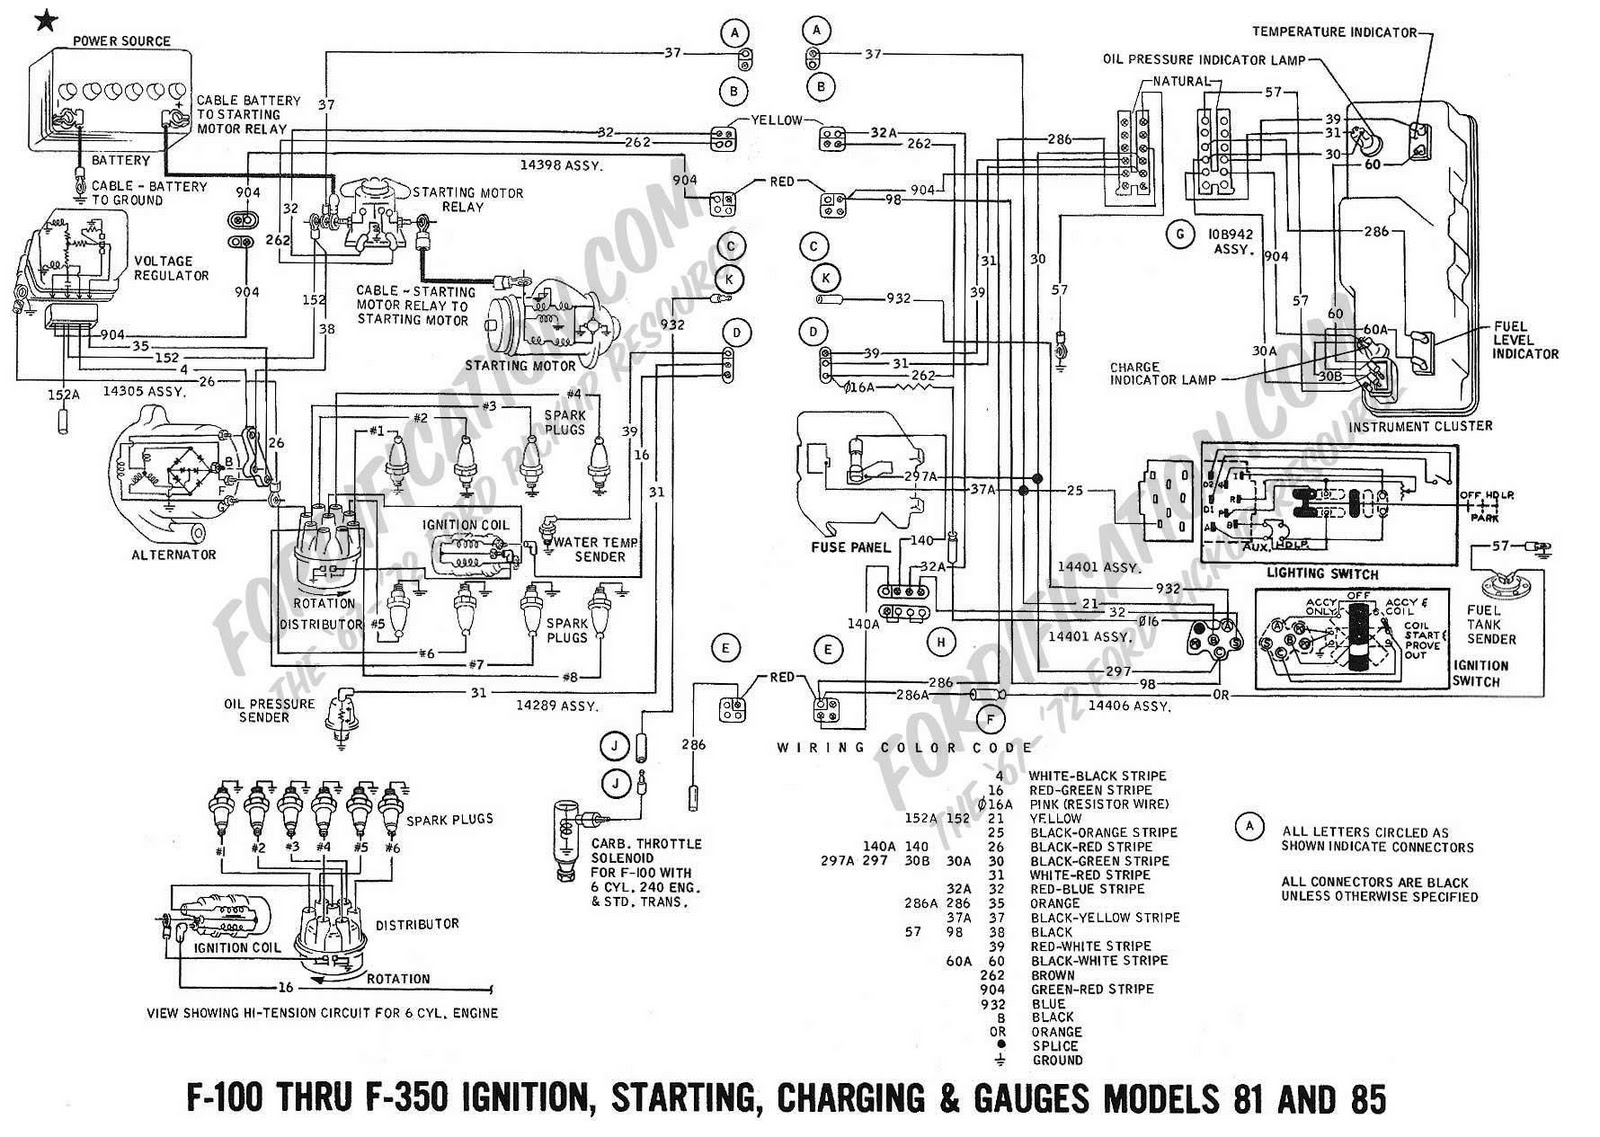 Hyundai Elantra Wiring Harness Diagram